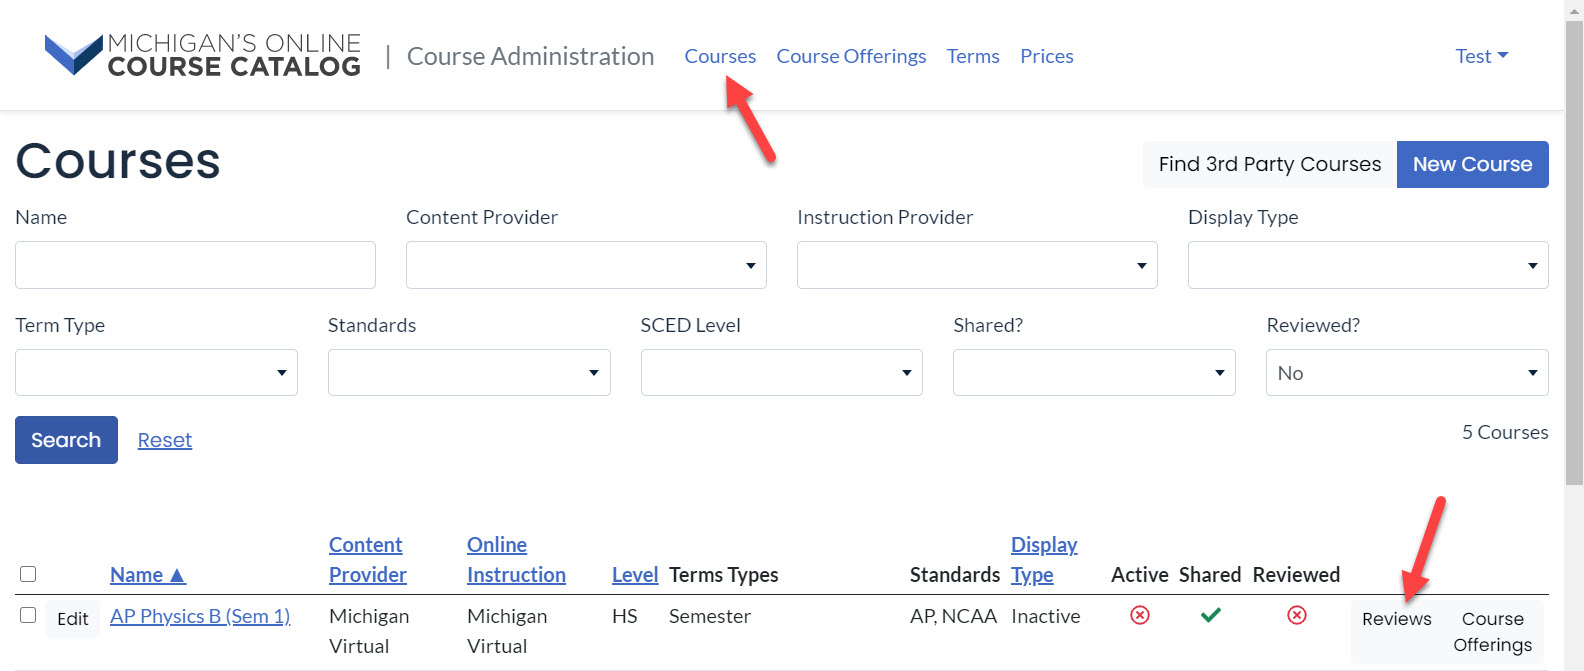 """Screen capture of the Courses page shows arrows pointing to the Courses tab and to the Reviews link in the results table. There is a search area with filters to apply and the Reviewed filter is populated with """"No."""""""